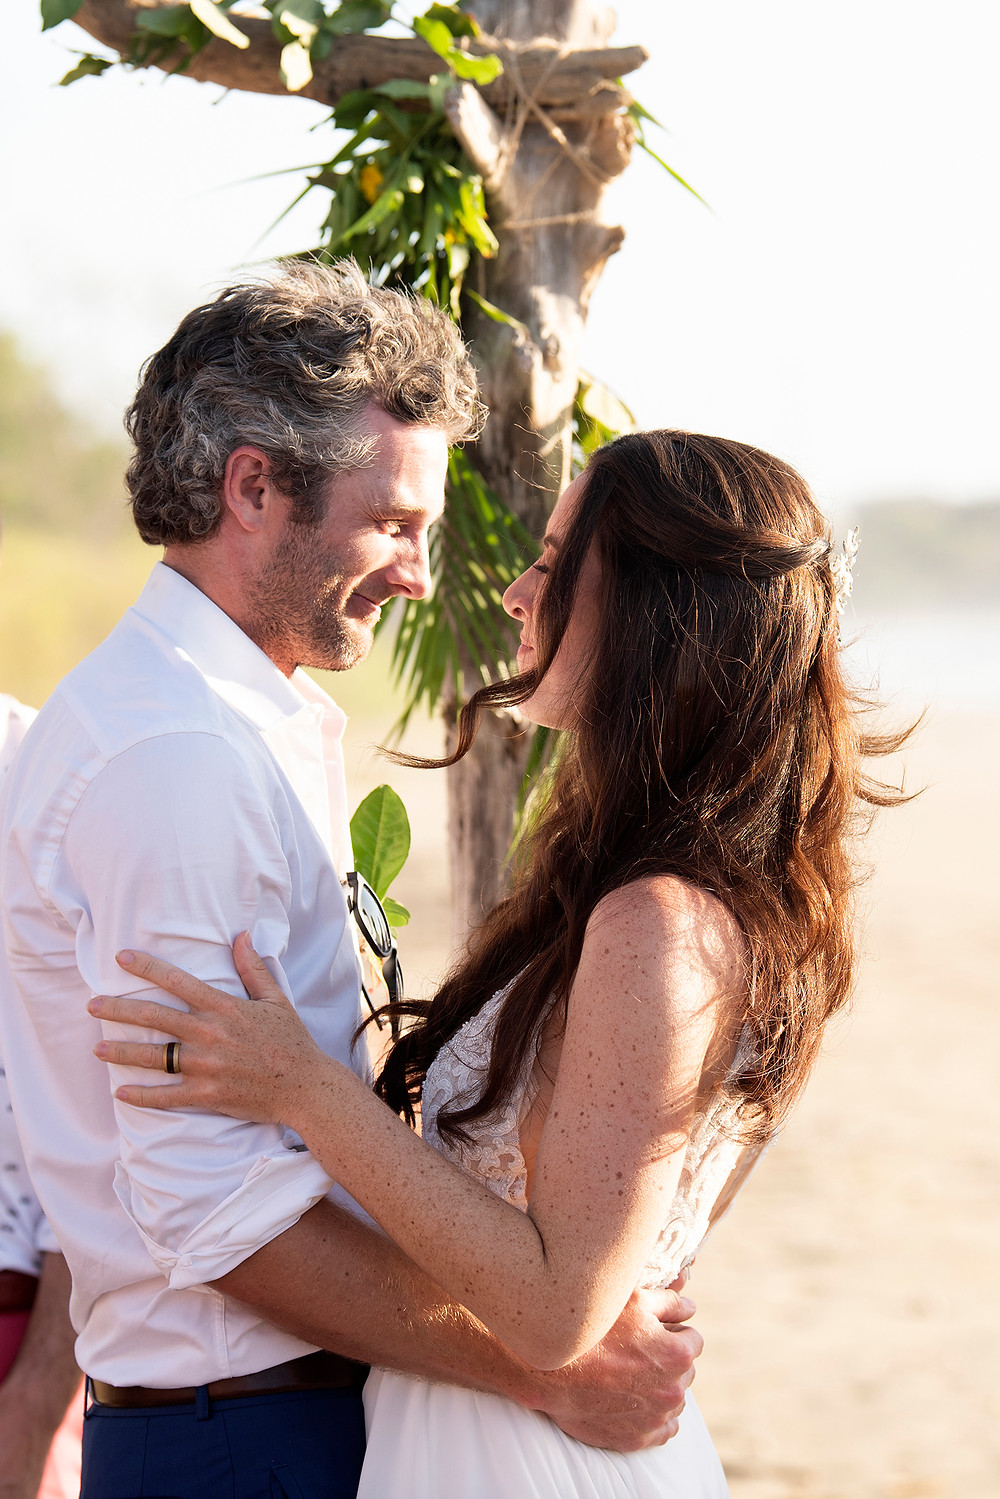 Destination wedding in Playa Grande, Costa Rica. Photographed by Kaitlyn Shea.